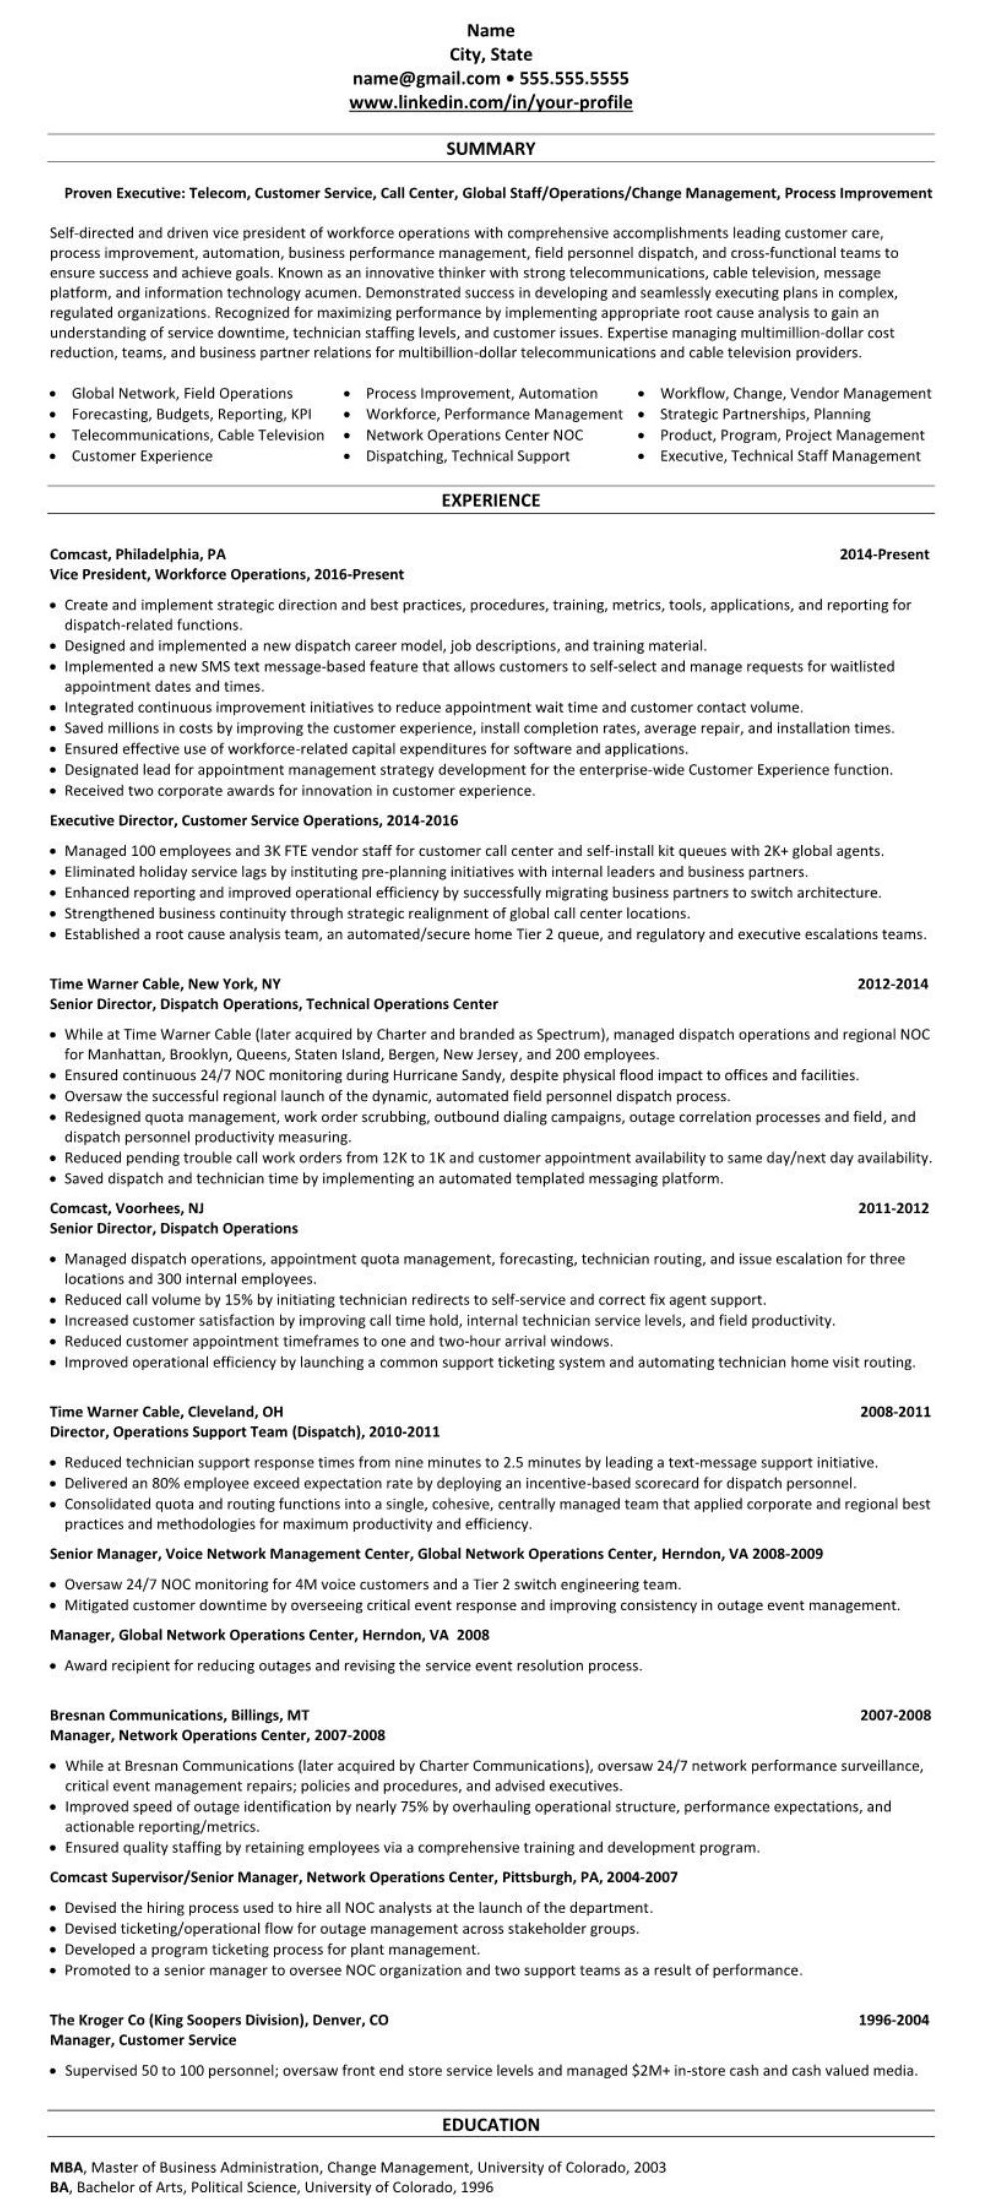 sample linkedin profile  u0026 resume  customer service  call